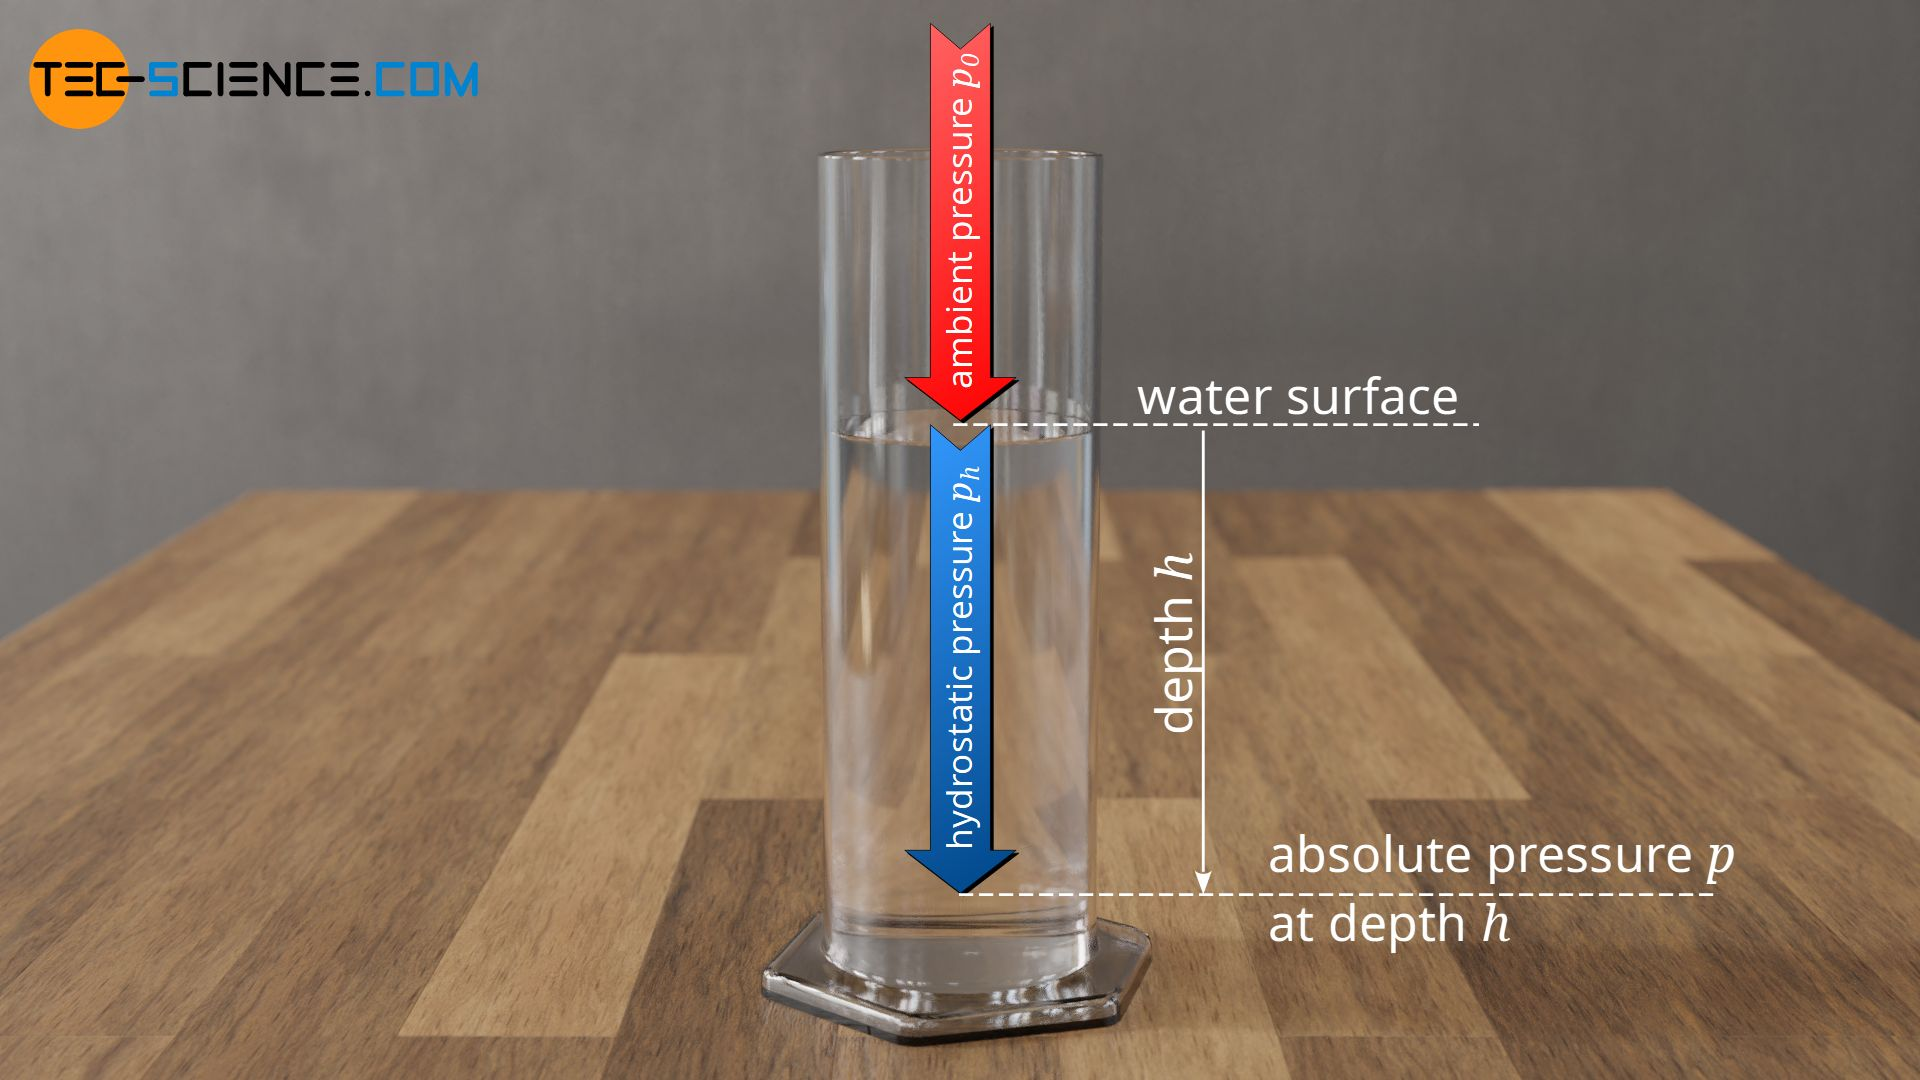 Total pressure at a given depth as the sum of ambient pressure and hydrostatic pressure